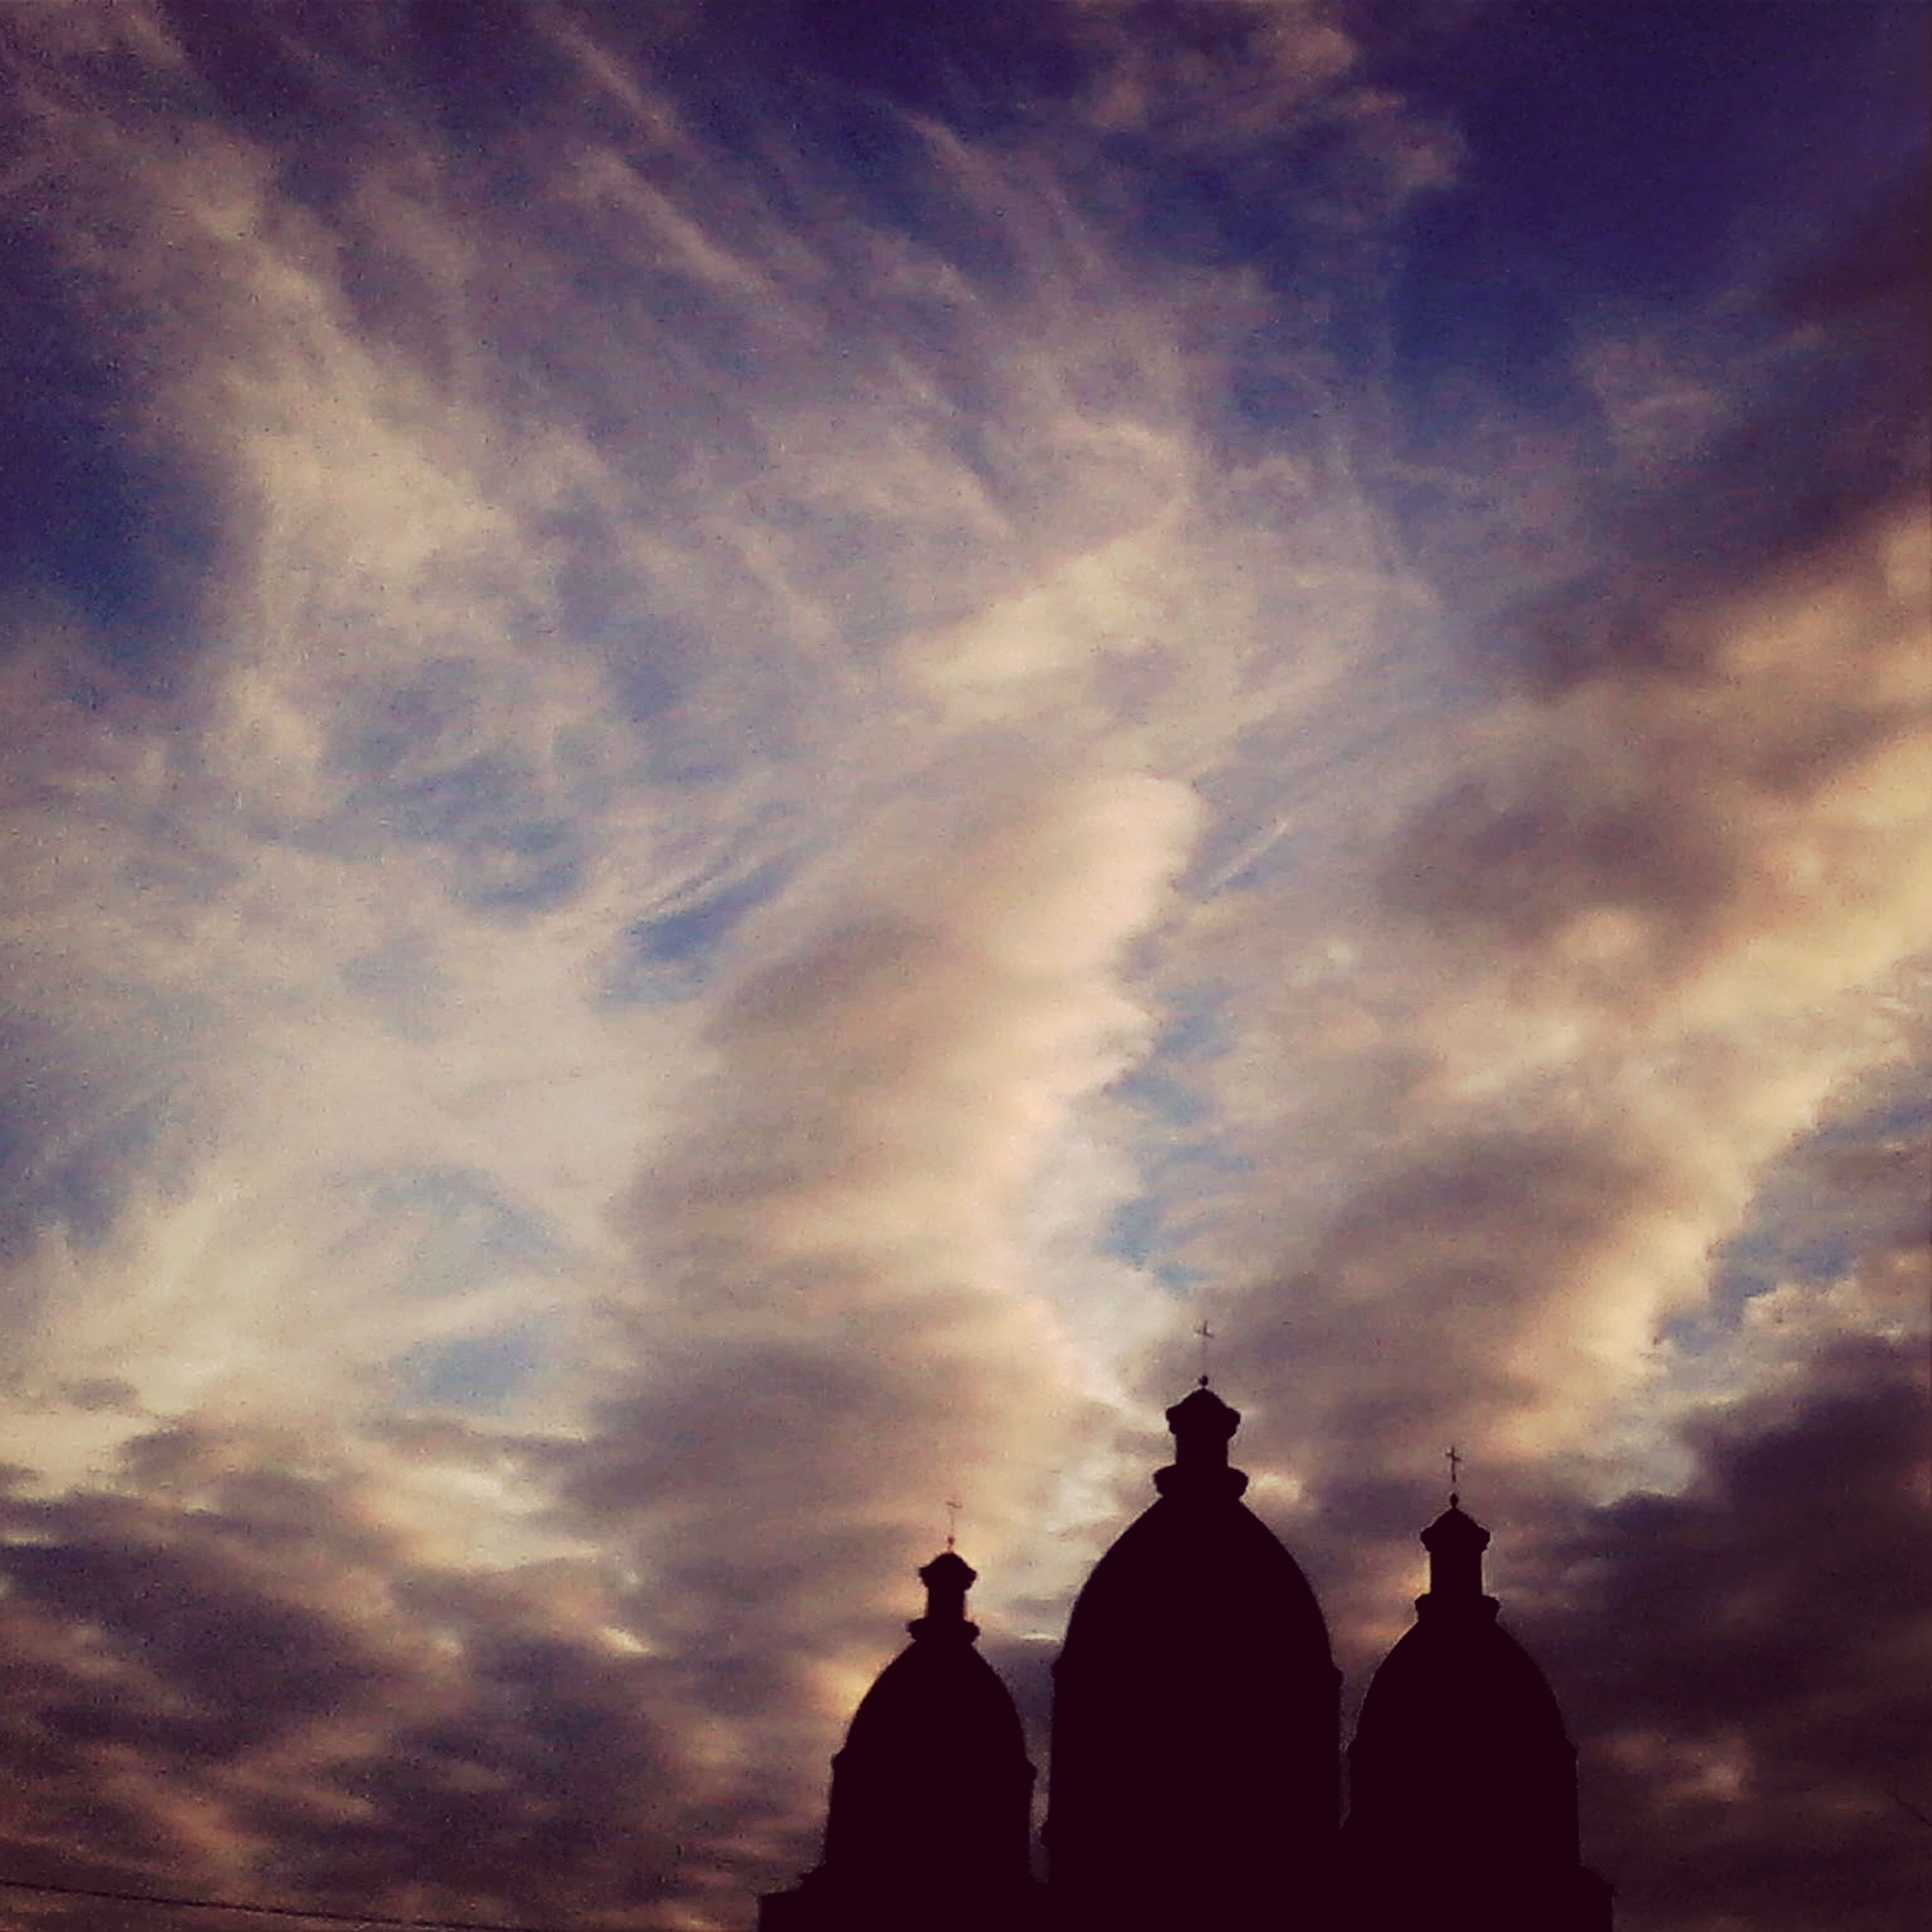 low angle view, sky, cloud - sky, silhouette, dome, architecture, cloudy, built structure, spirituality, place of worship, religion, sunset, cloud, famous place, high section, outdoors, sculpture, dusk, statue, travel destinations